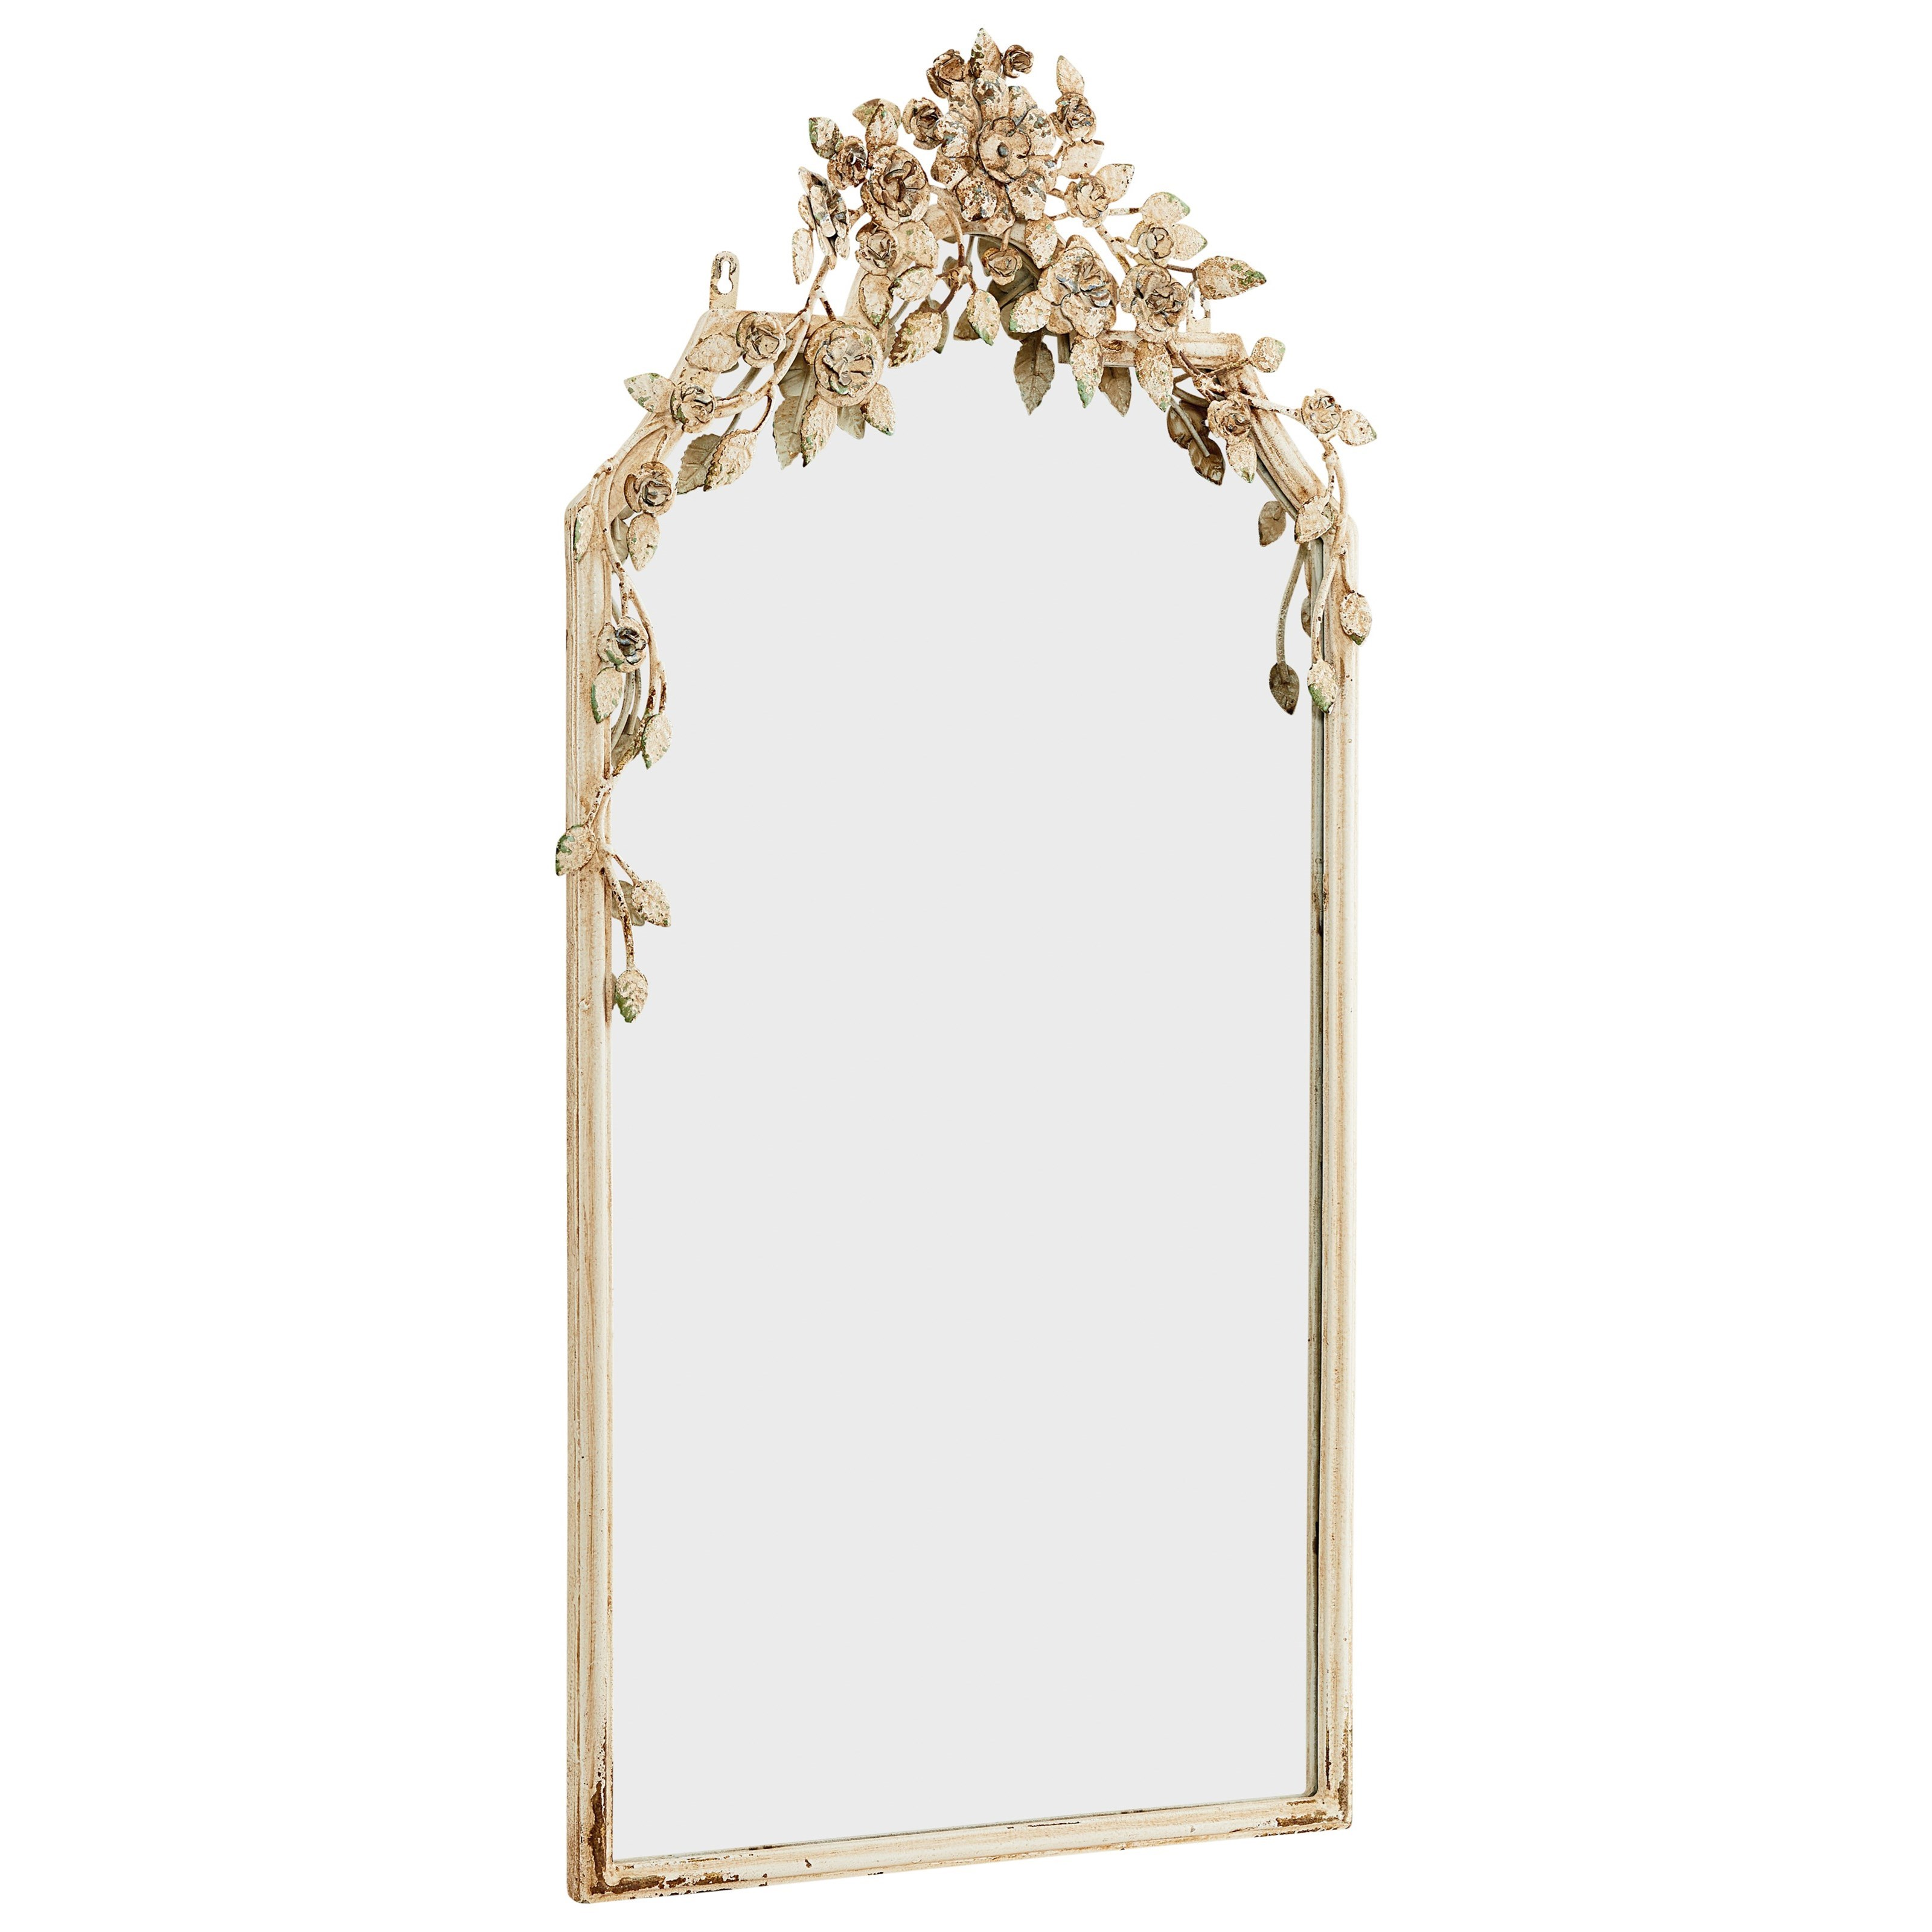 Magnolia Home by Joanna Gaines Accessories 90911503 Metal Framed ...